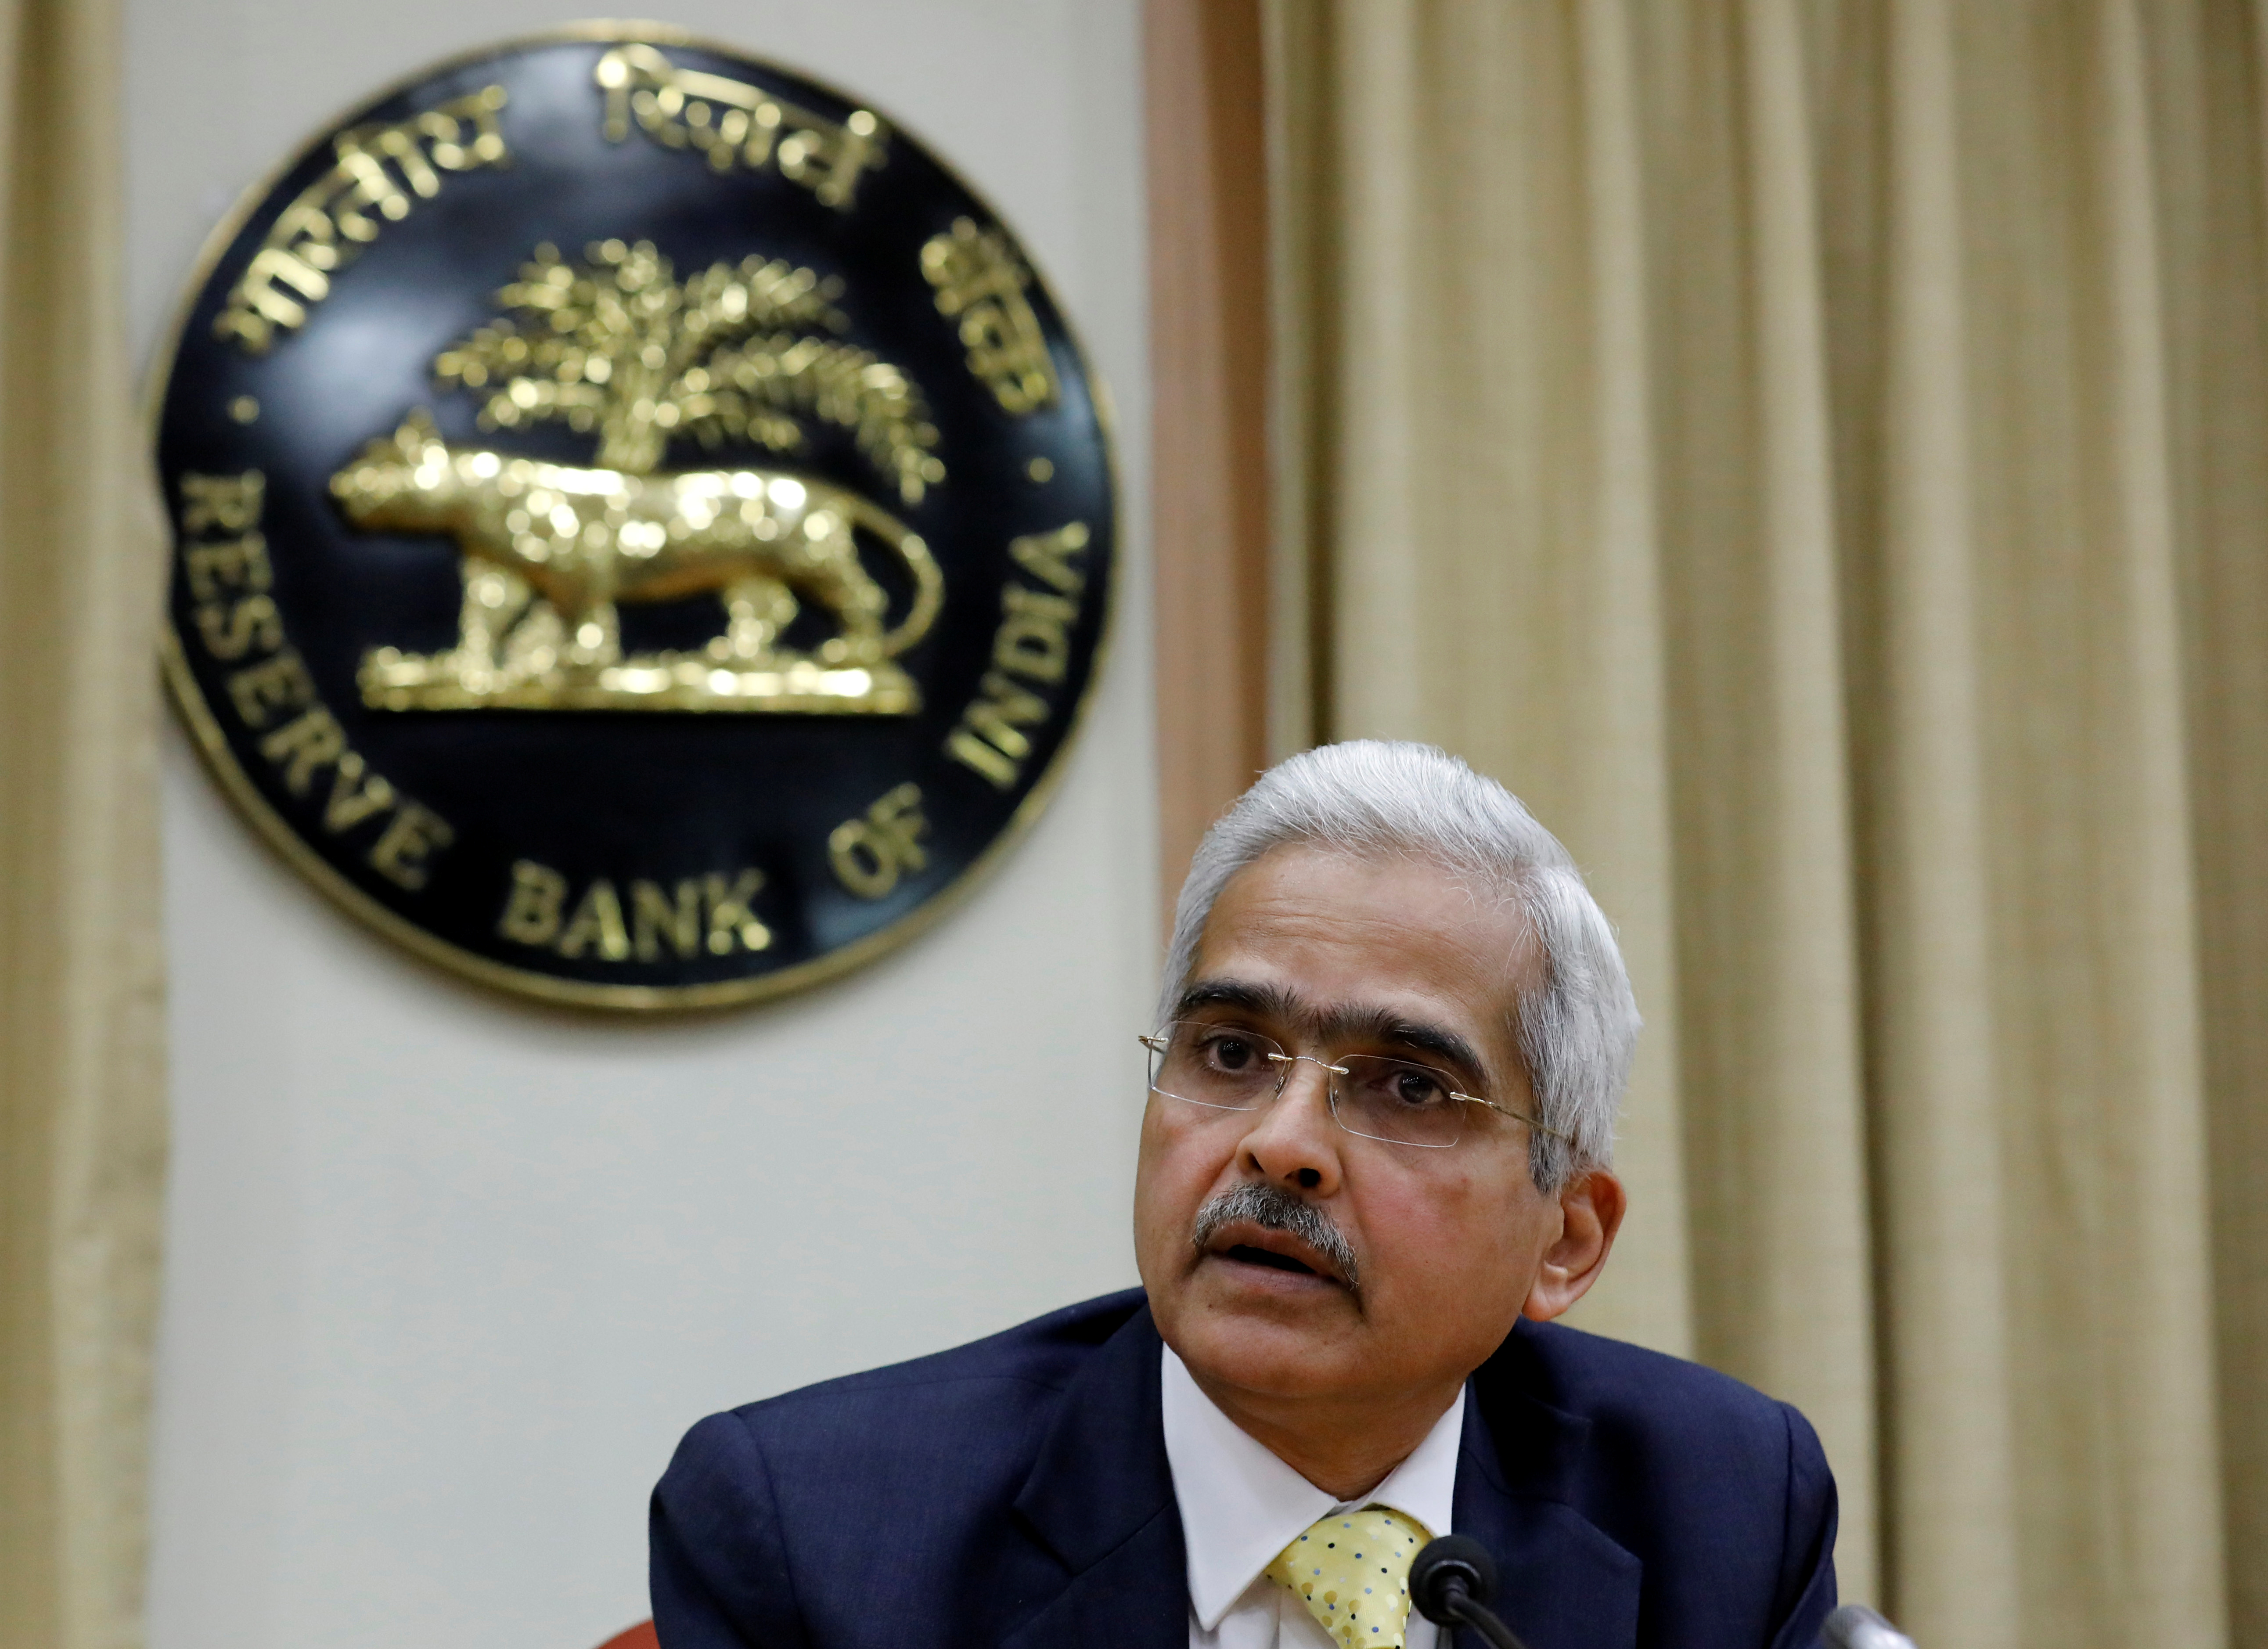 Shaktikanta Das, the Reserve Bank of India (RBI) Governor, attends a news conference in Mumbai, India, December 12, 2018. REUTERS/Danish Siddiqui/File photo